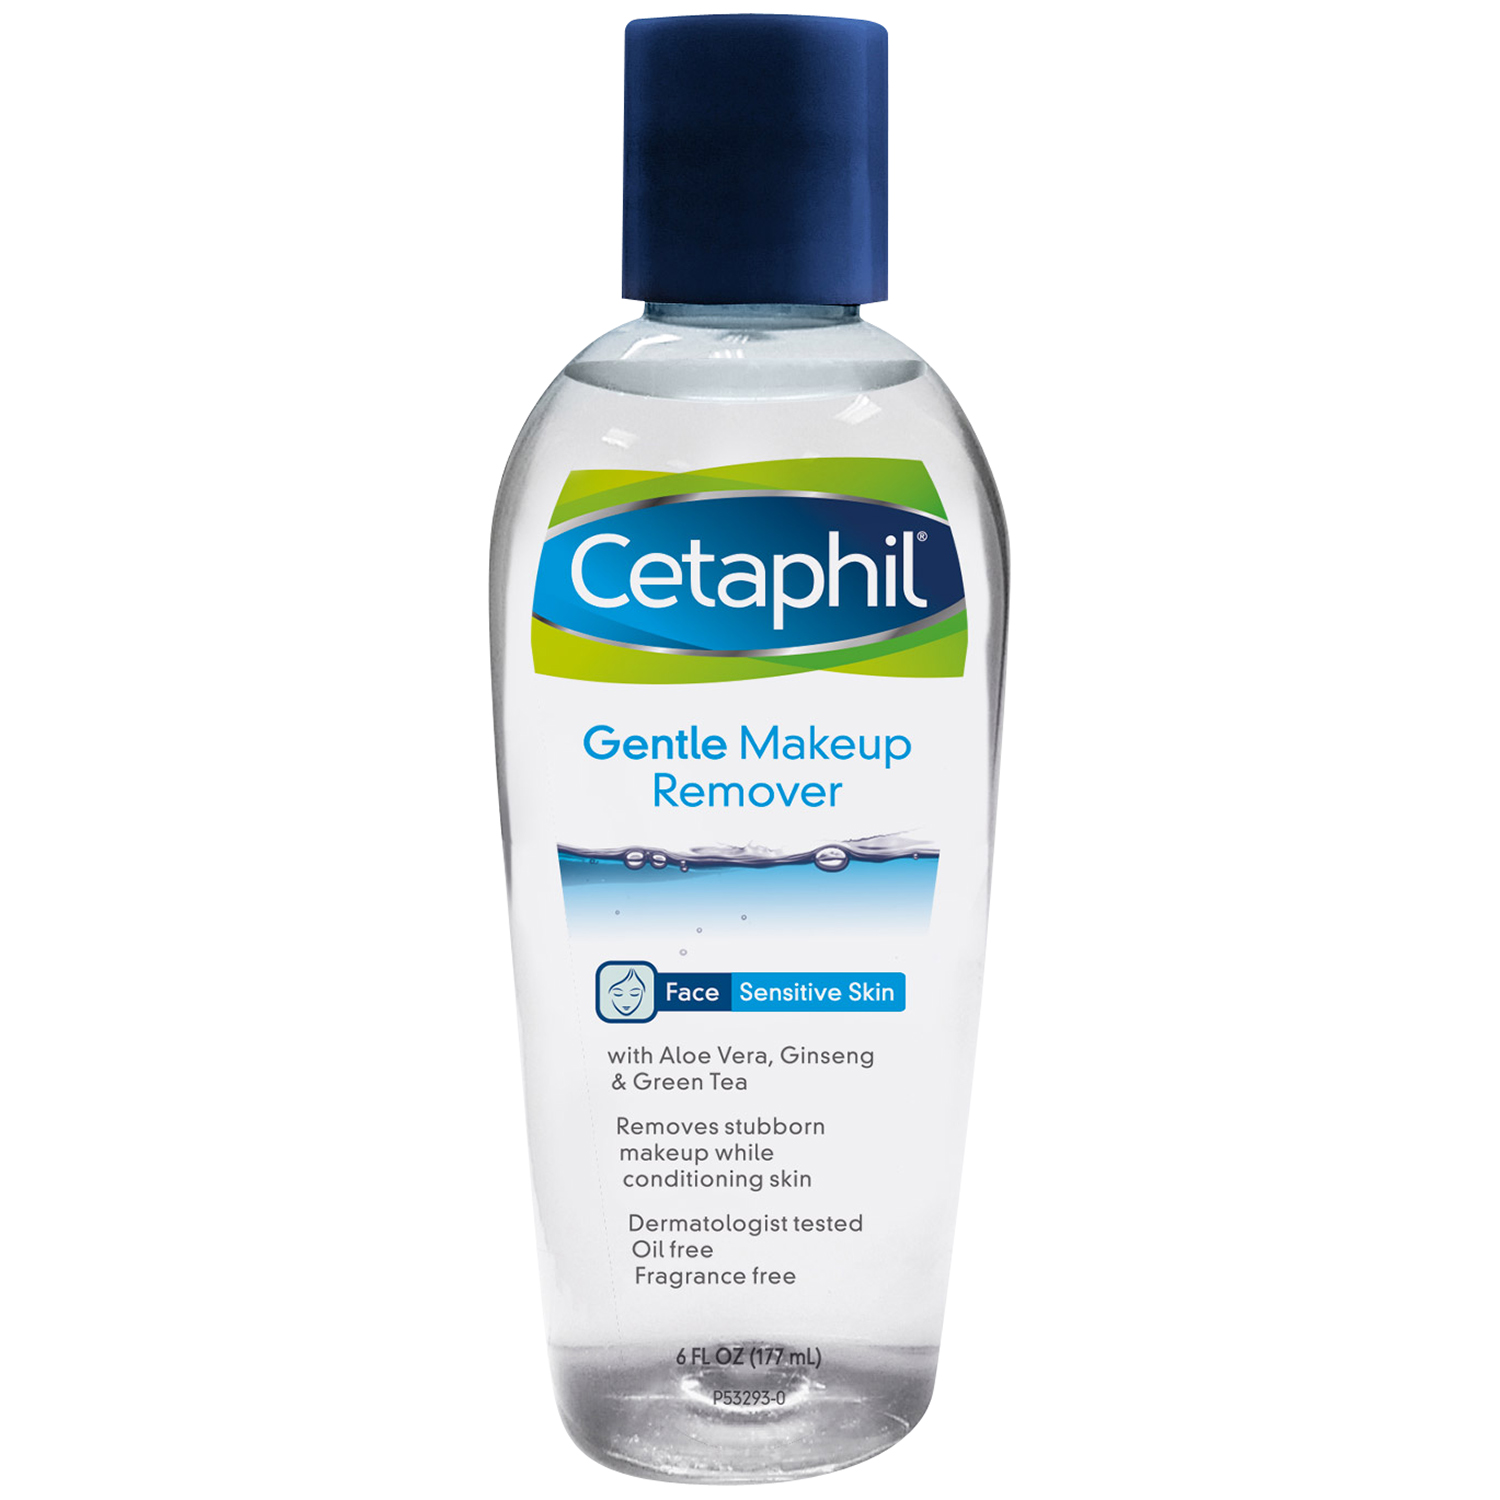 Galderma Laboratories, LP, Cetaphil Gentle Makeup Remover, 6 fl oz